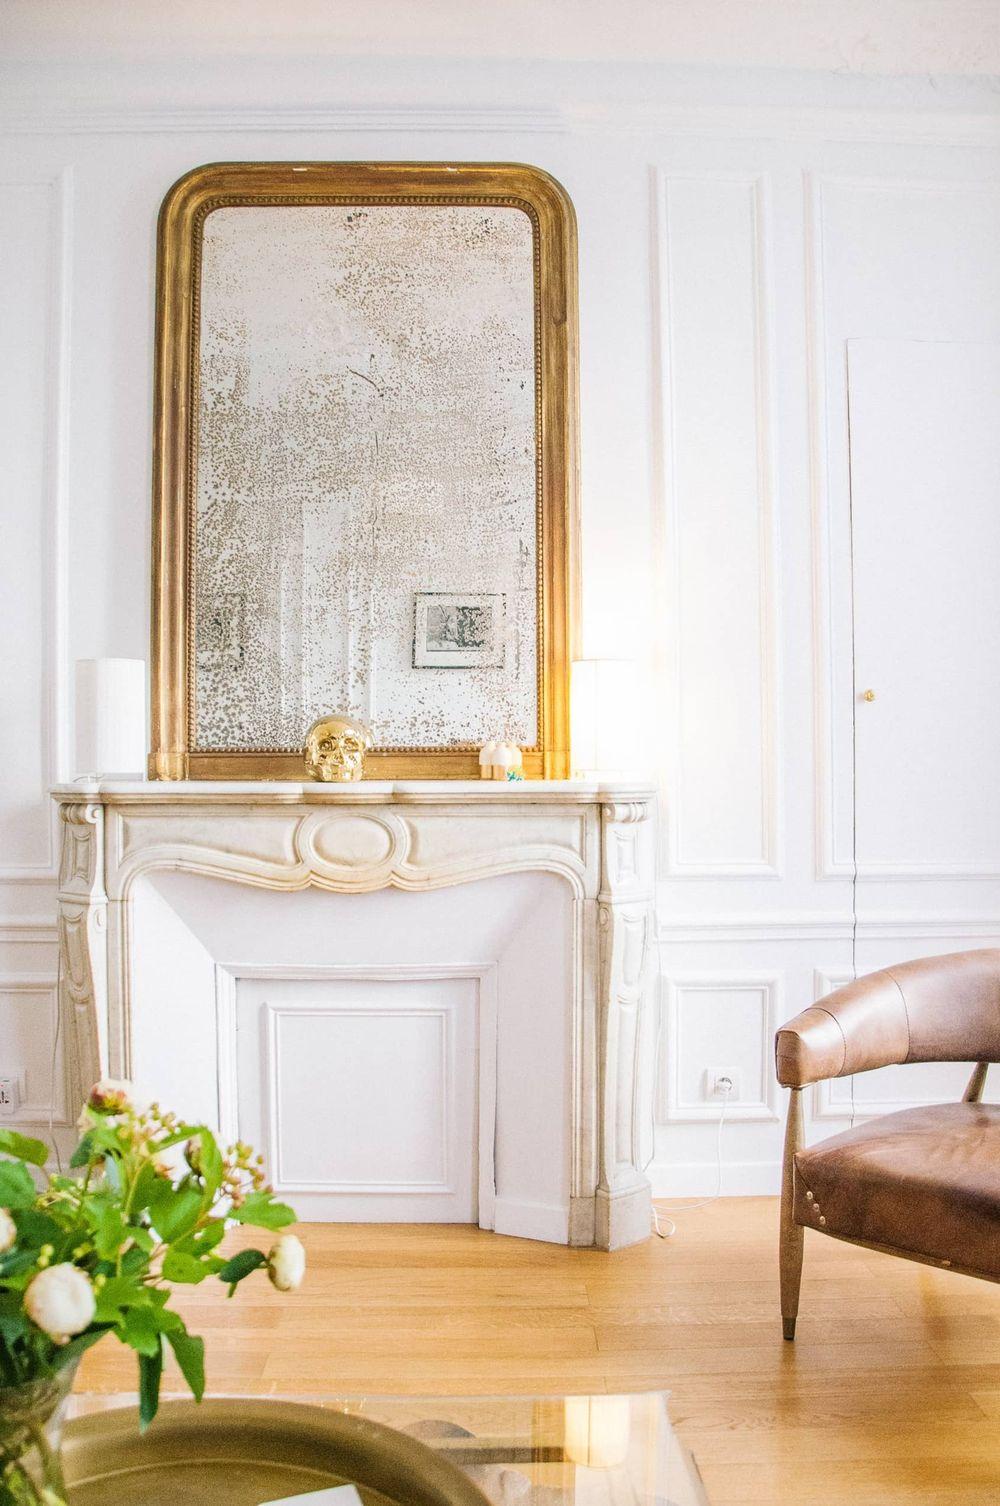 Parisian fireplace with distressed mirror and brown leather chair via Katy Cartland